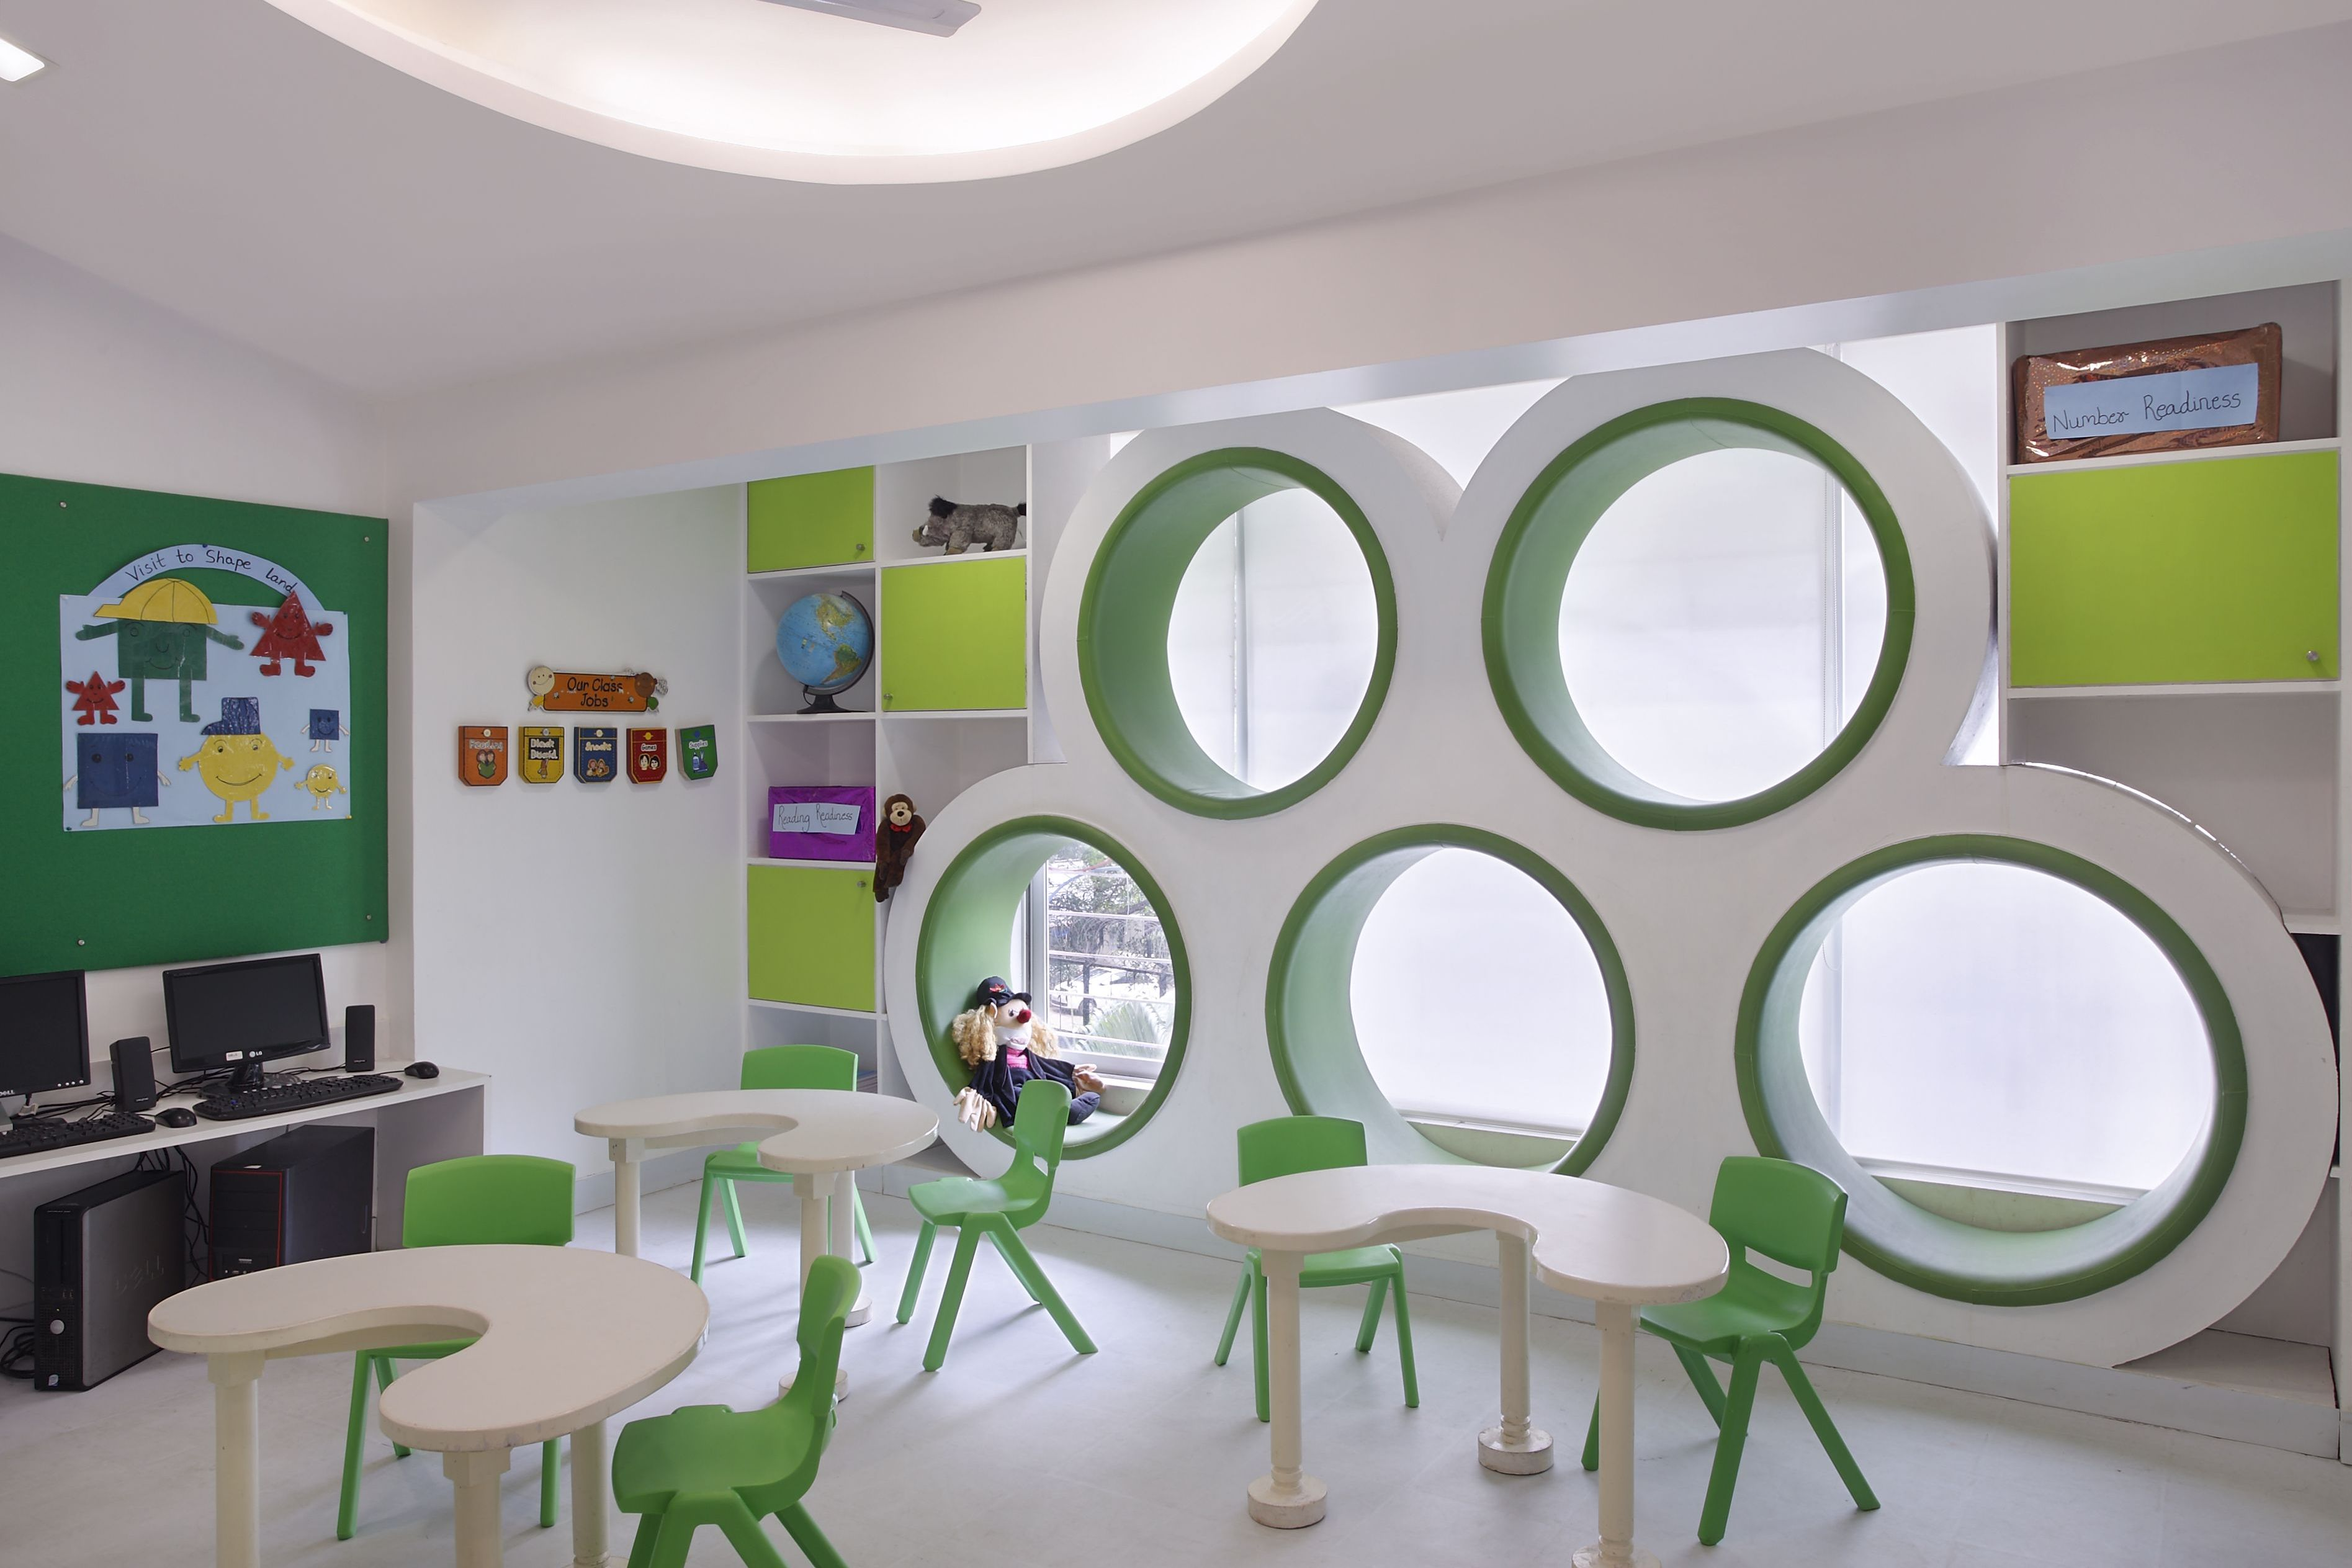 Kids school interior design - Kangaroo Kids Bandra Mumbai Commissioned To Design India S No 1 Pre School Here Are The Results